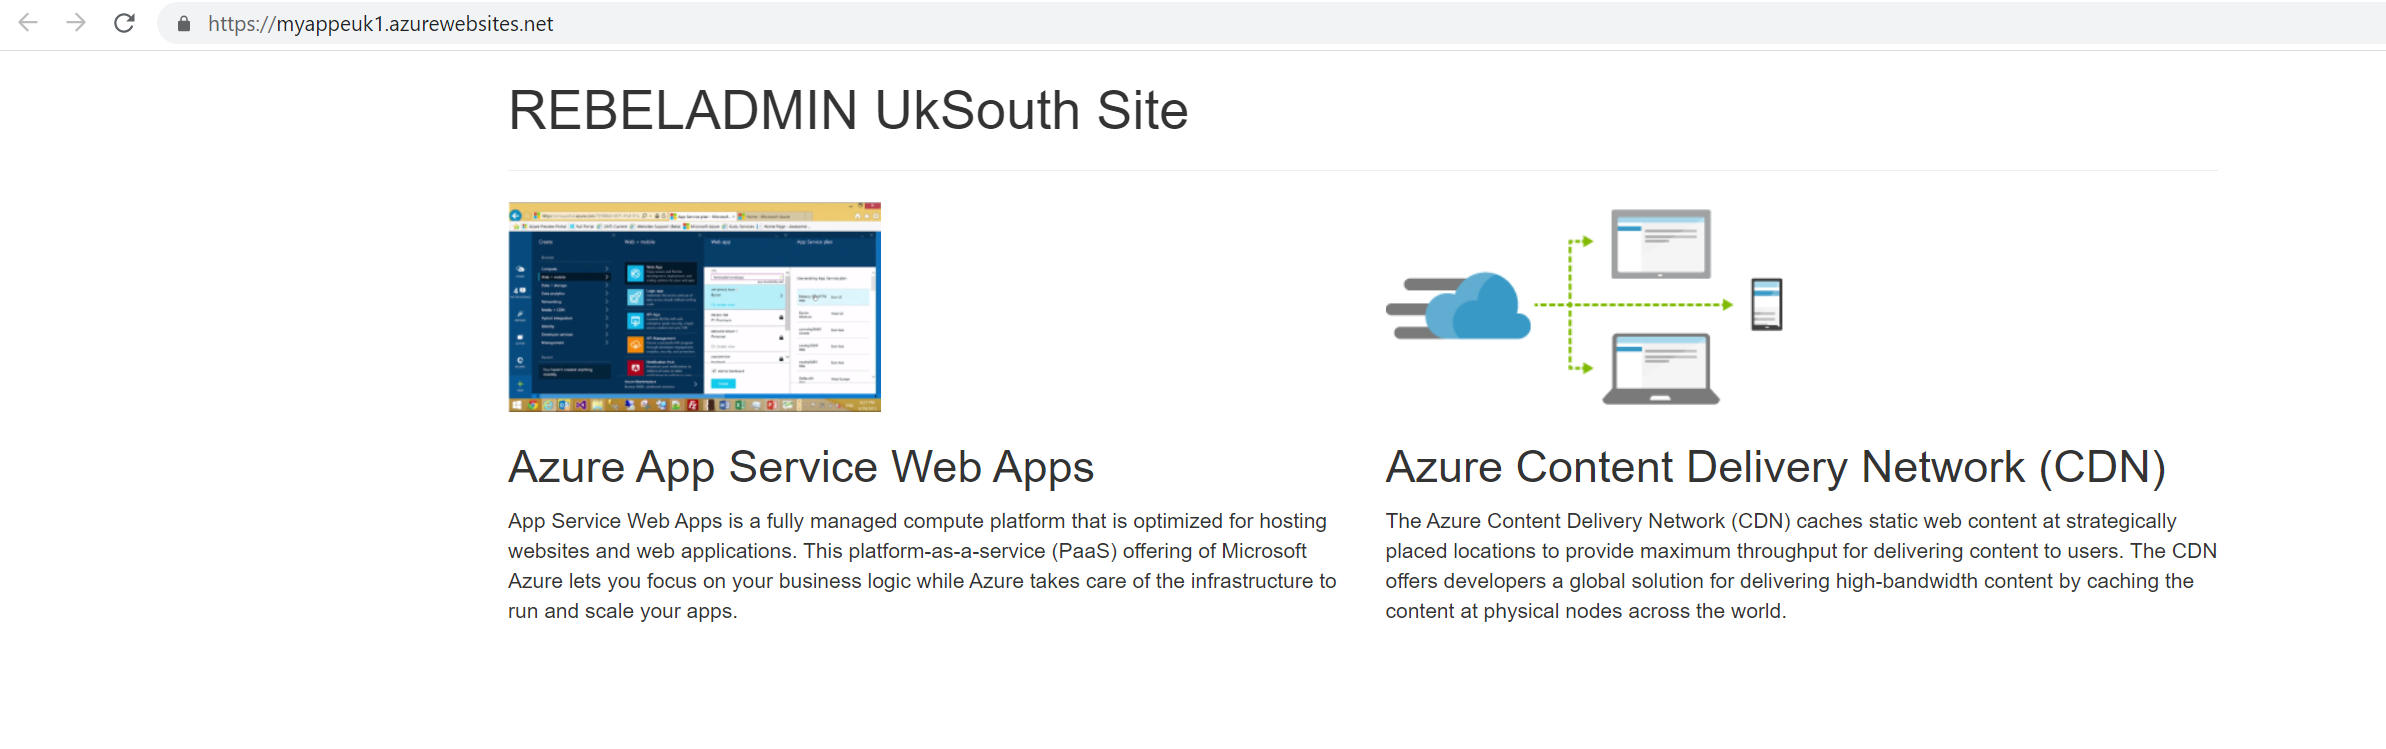 Azure WebApp in UK South Region